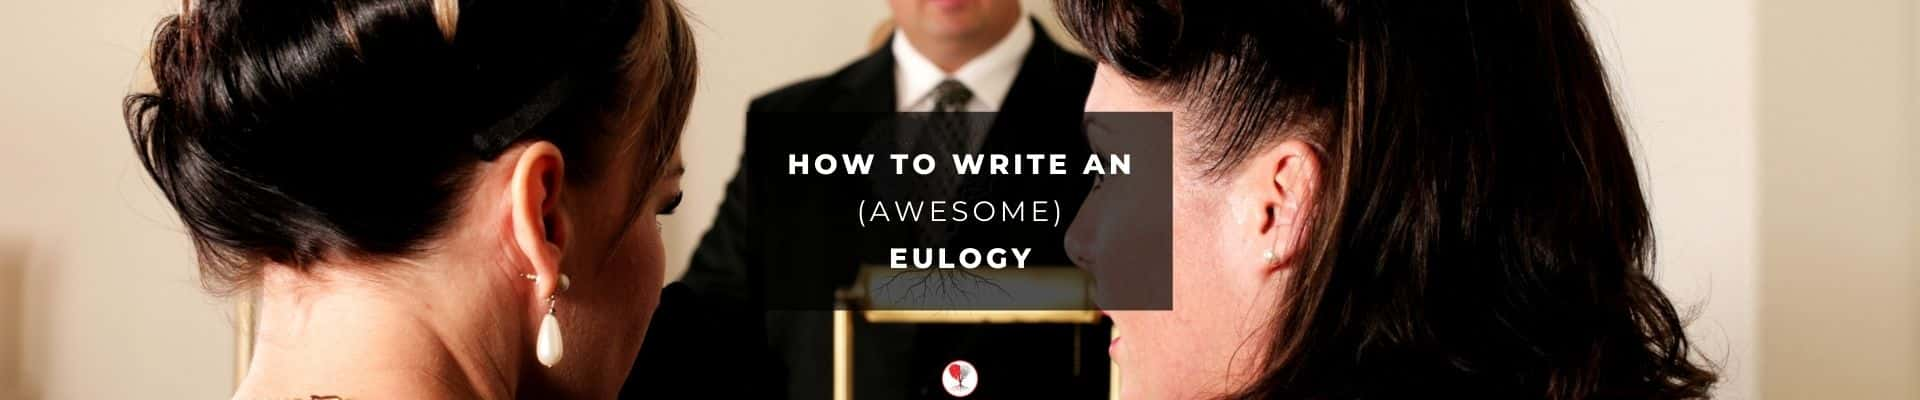 How to write an awesome eulogy